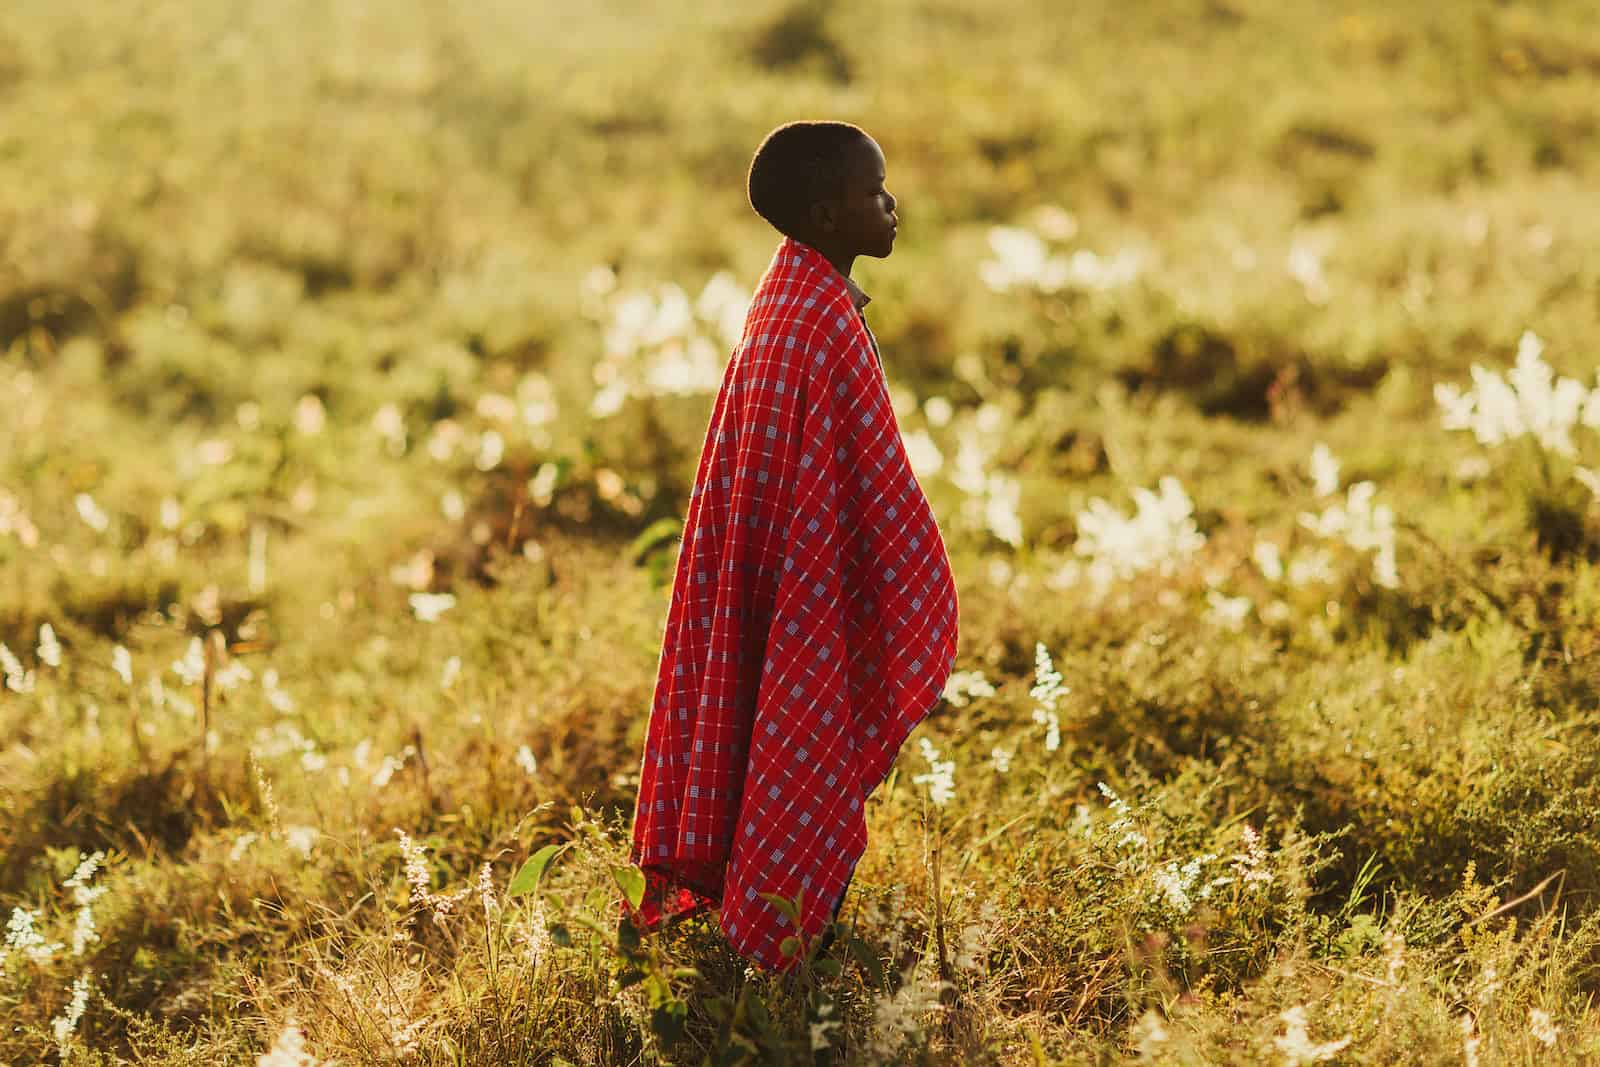 A boy in a red checked blanket stands in a golden field, looking into the distance.